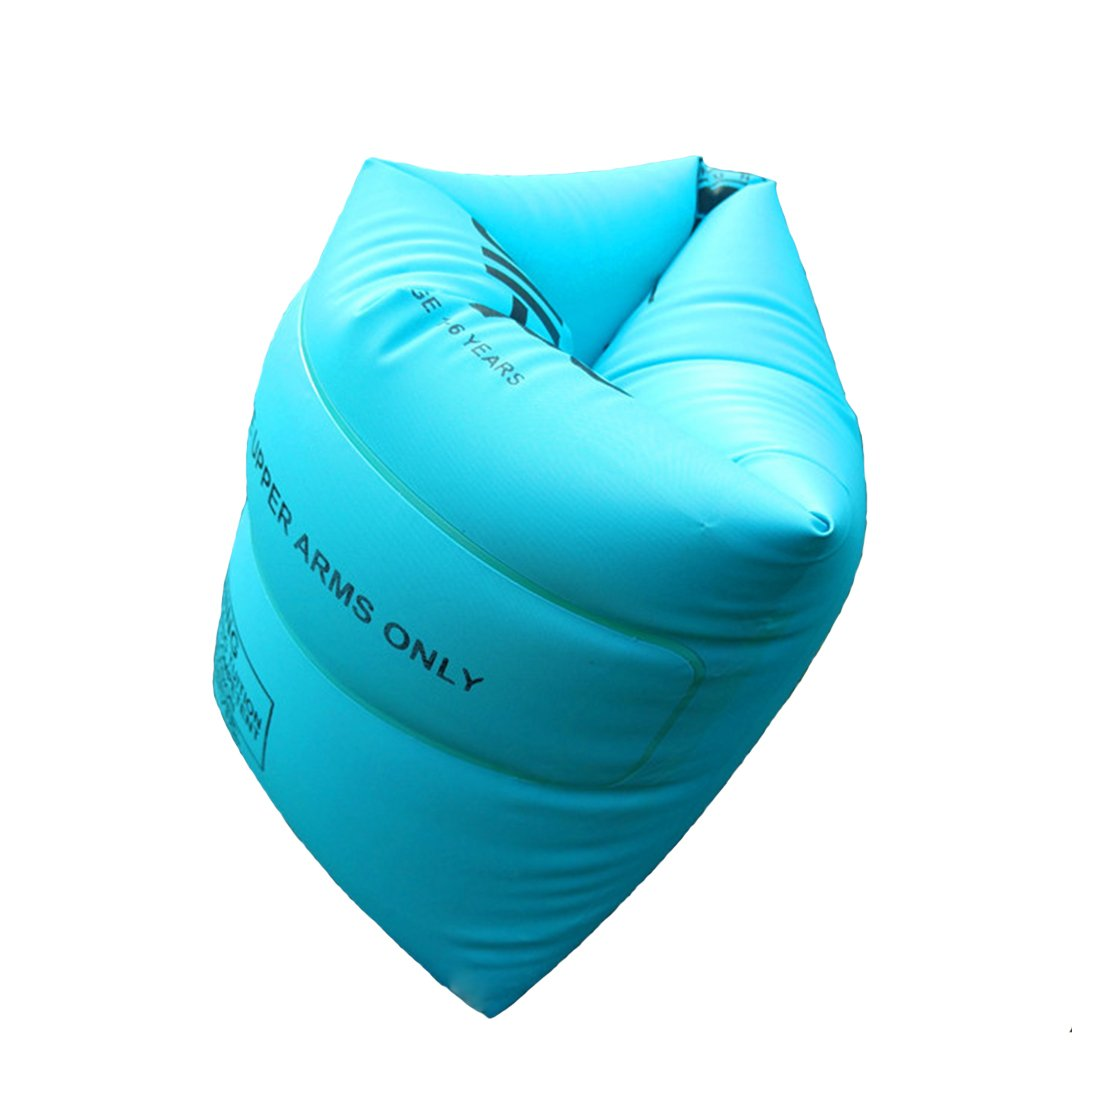 Nankoo Inflatable Roll Up Armband Thickened Floating Sleeves Swimming Rings Tube Armlets for Kids and Adult Beginners